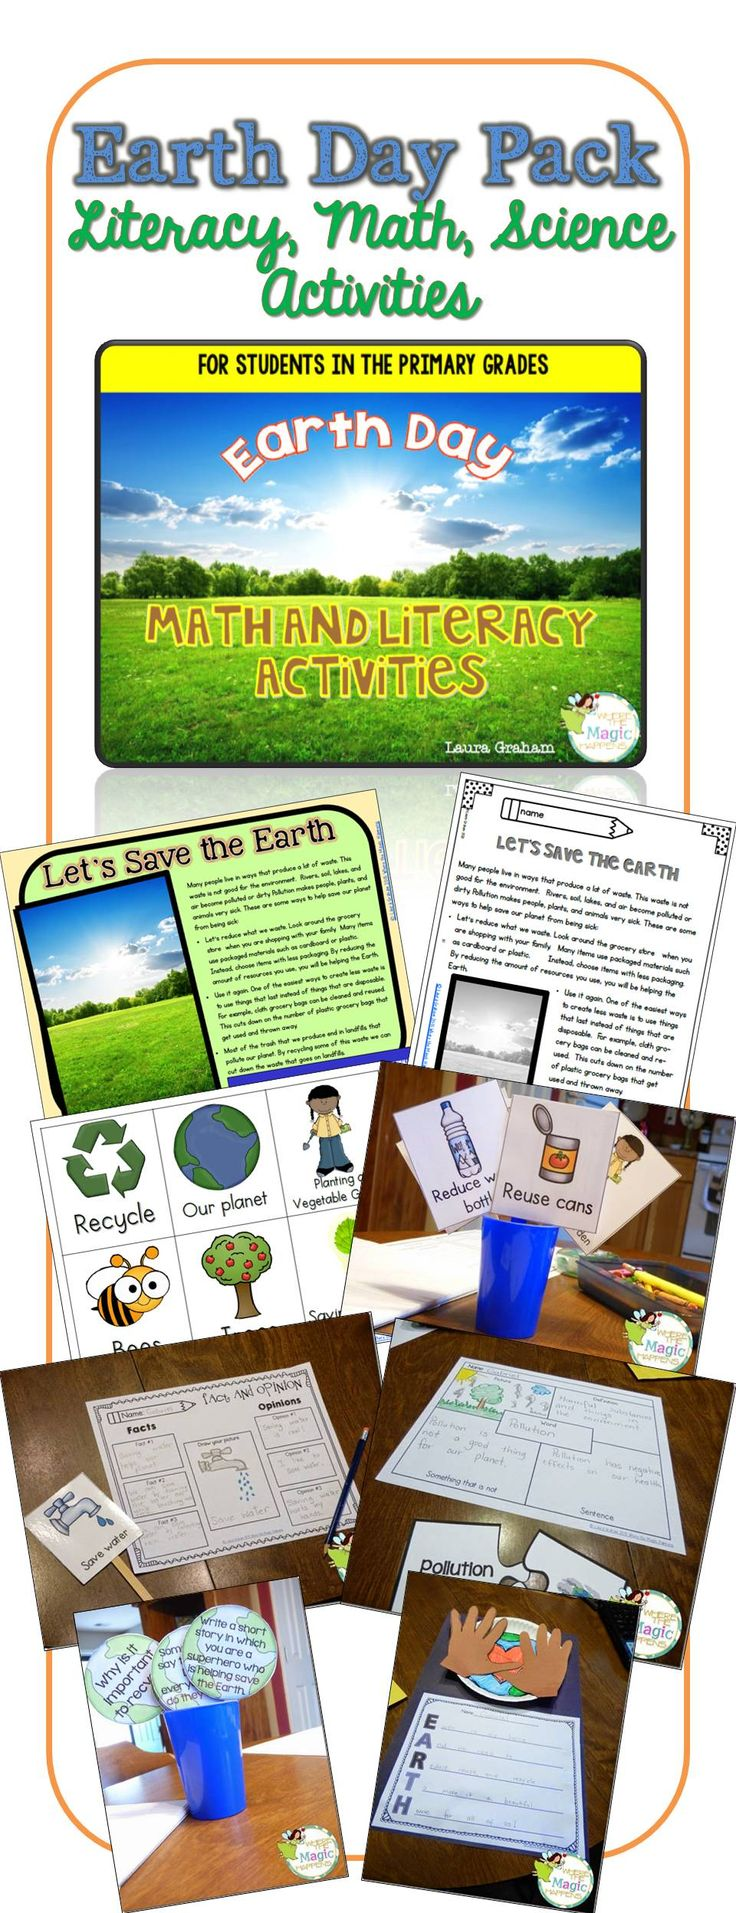 Reduce reuse recycle activities - Earth Day Activities